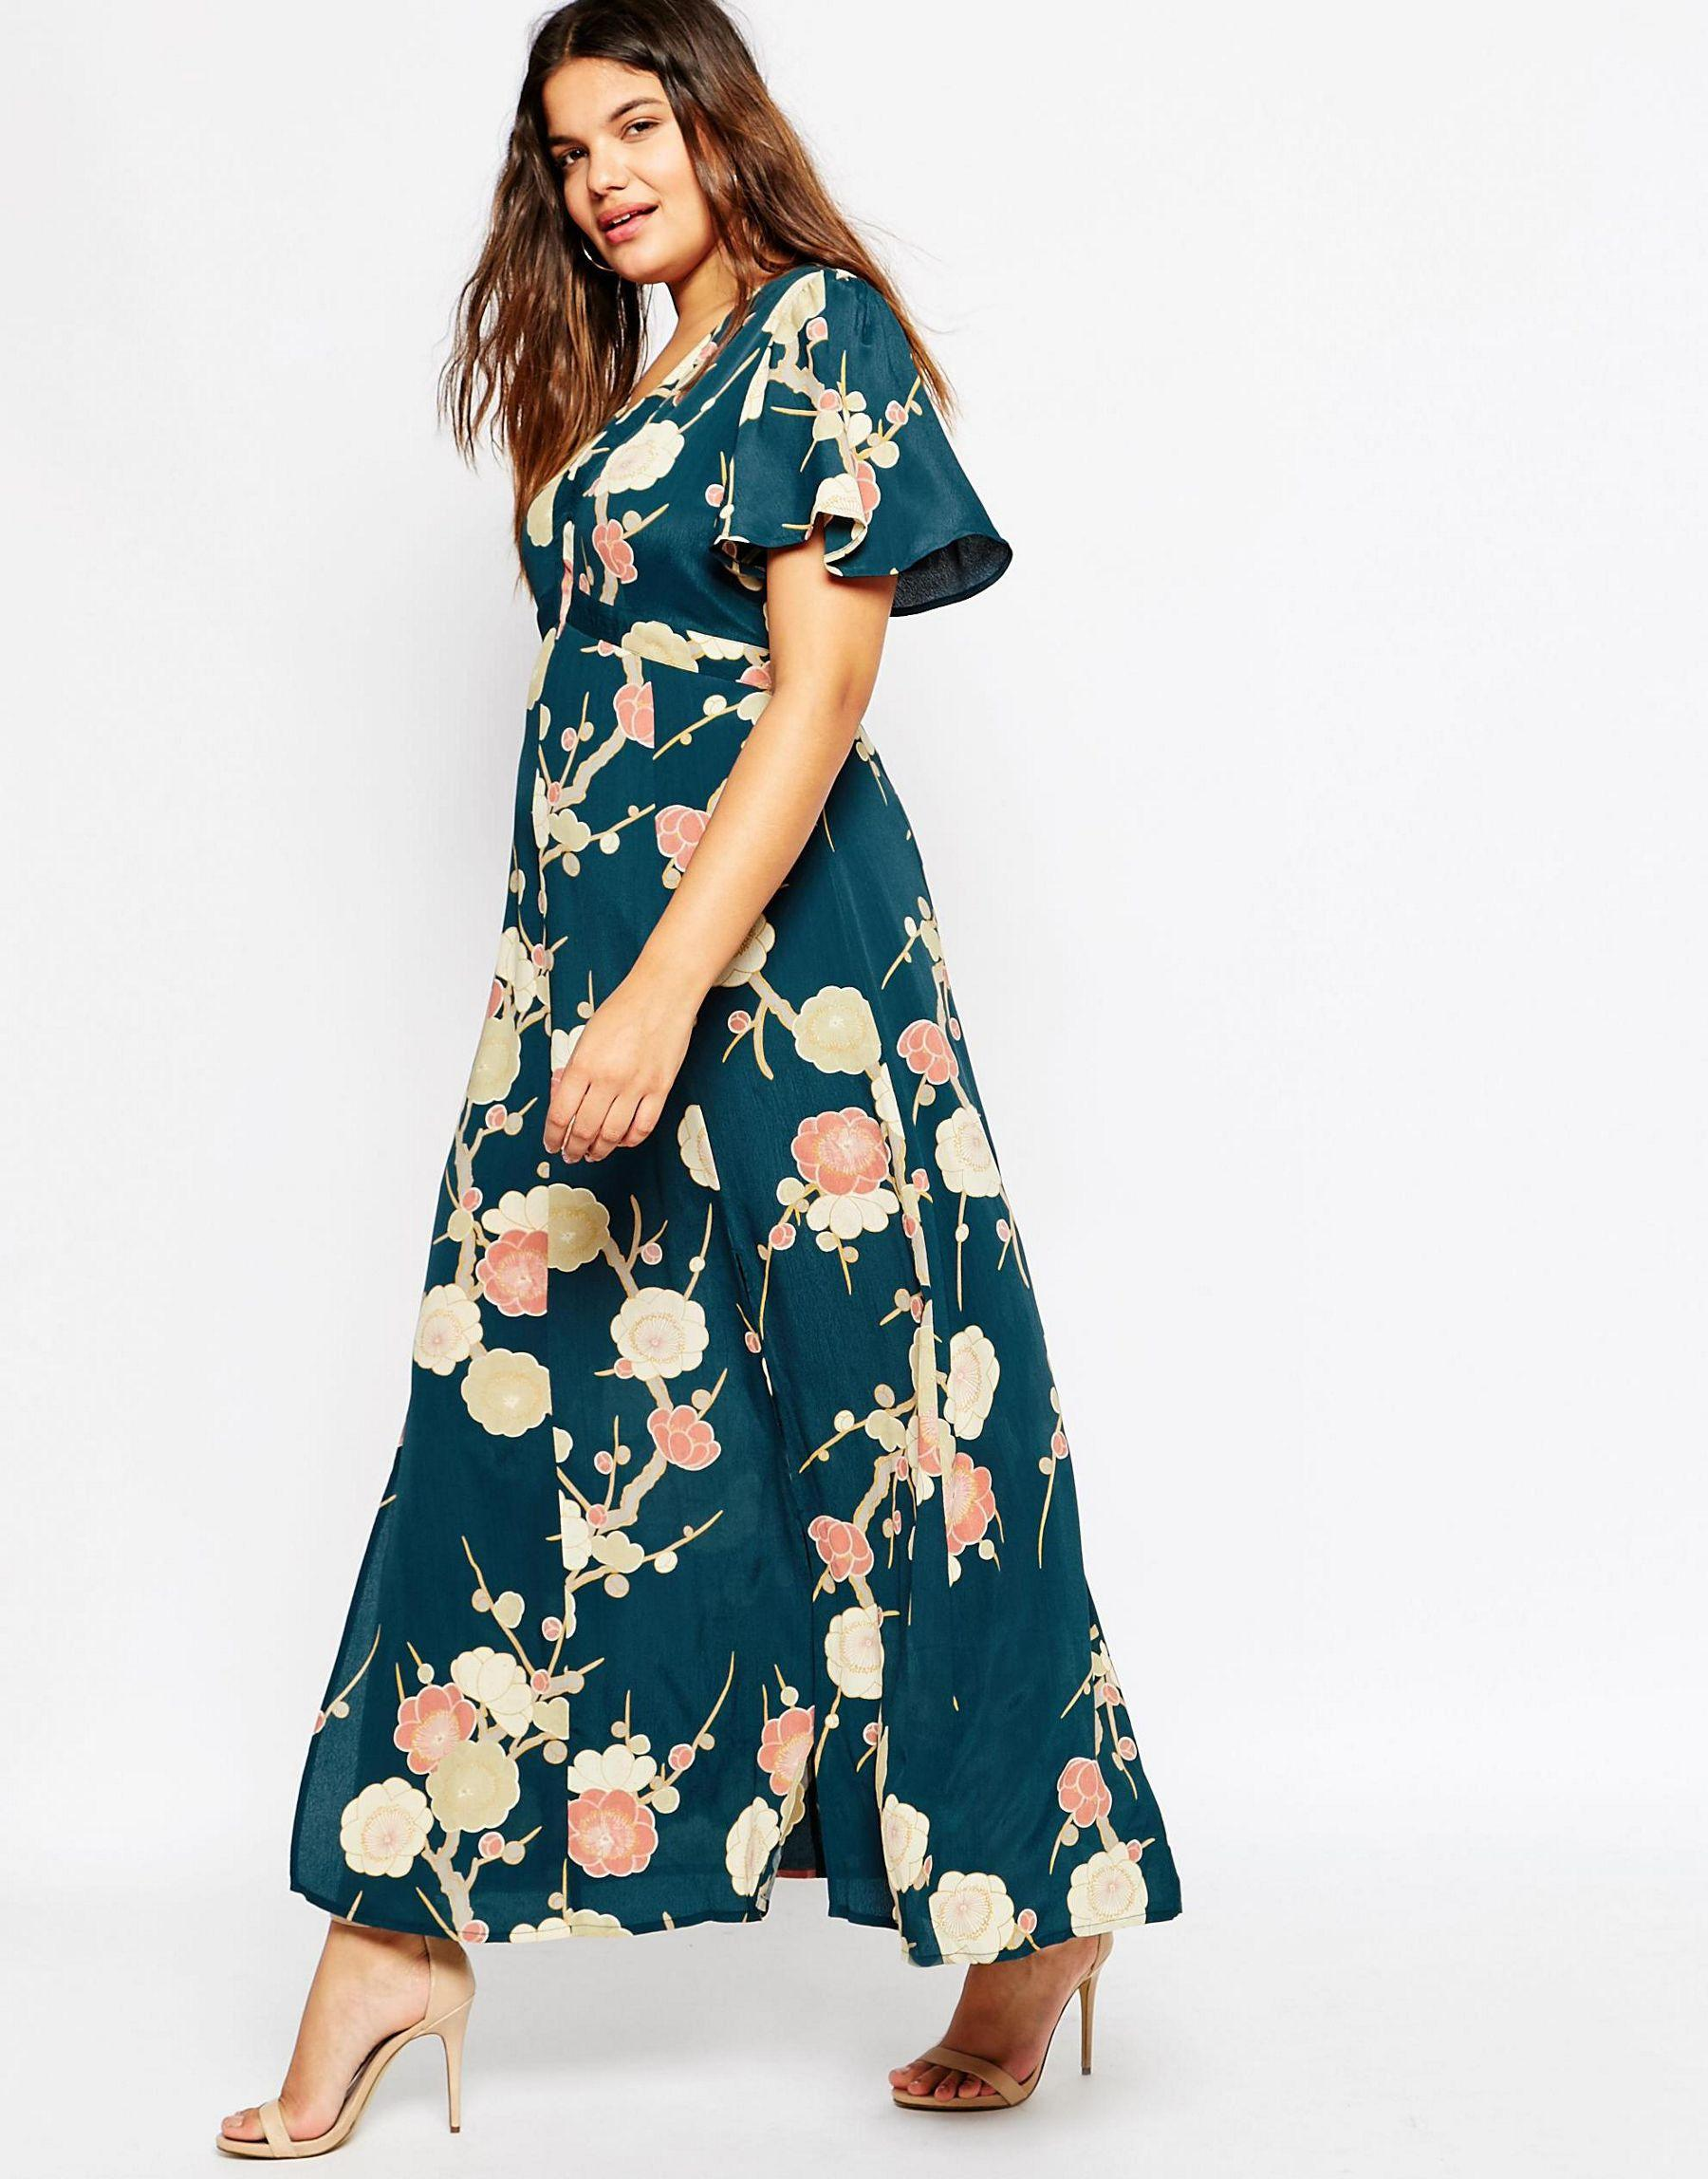 f8007260e5def Lyst - ASOS Curve Wedding Maxi Dress In Blossom Floral Print in Green